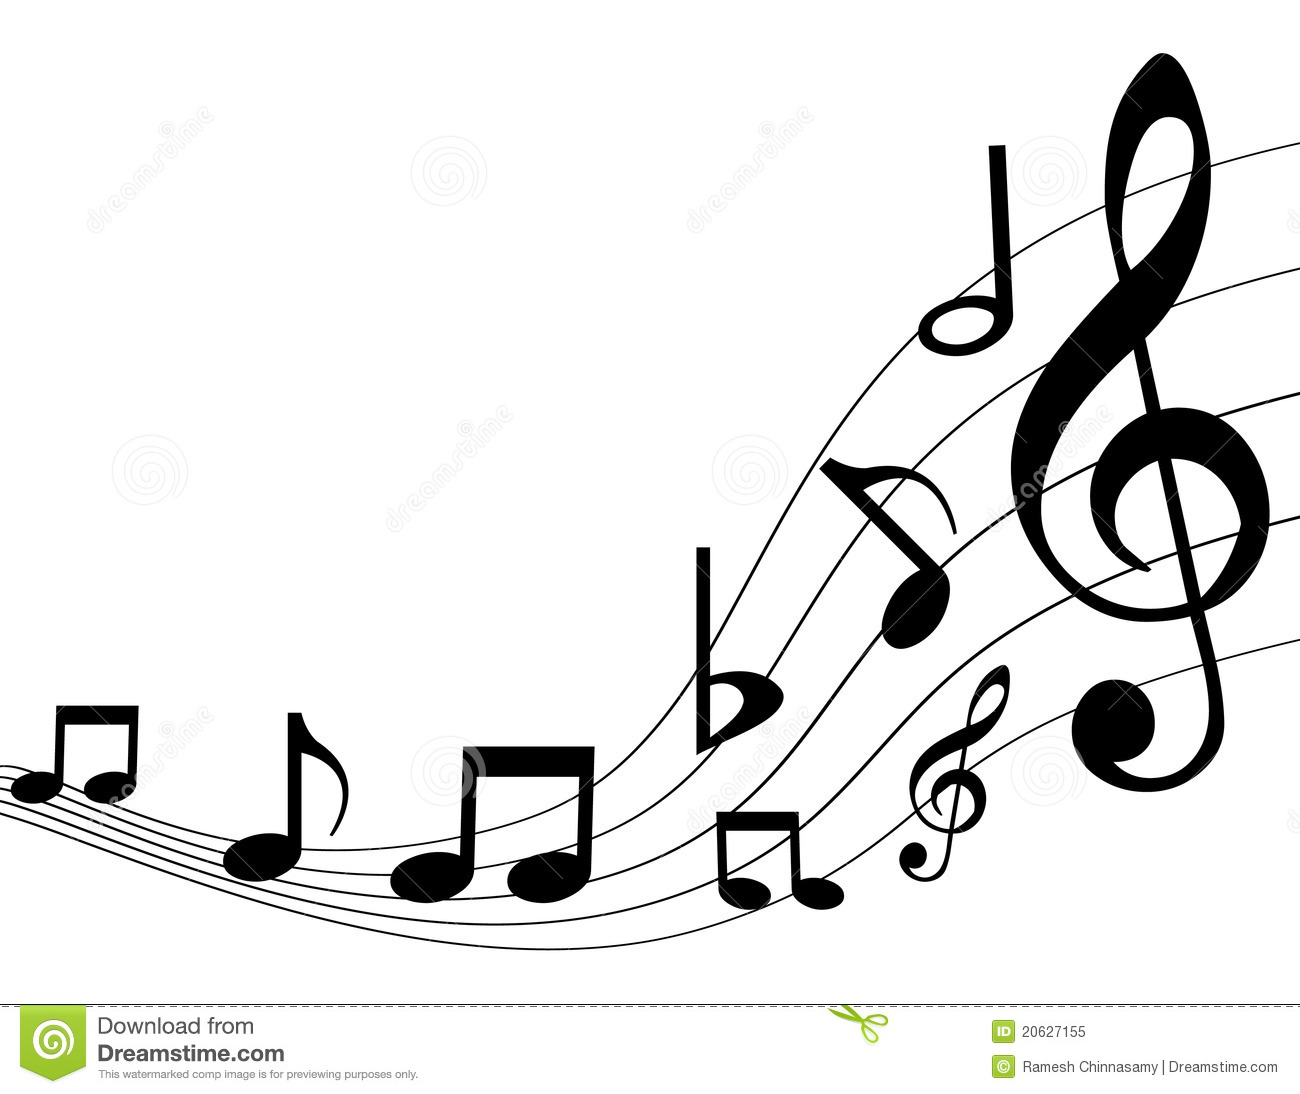 1300x1094 Music Notes Clipart Silhouette 3731861